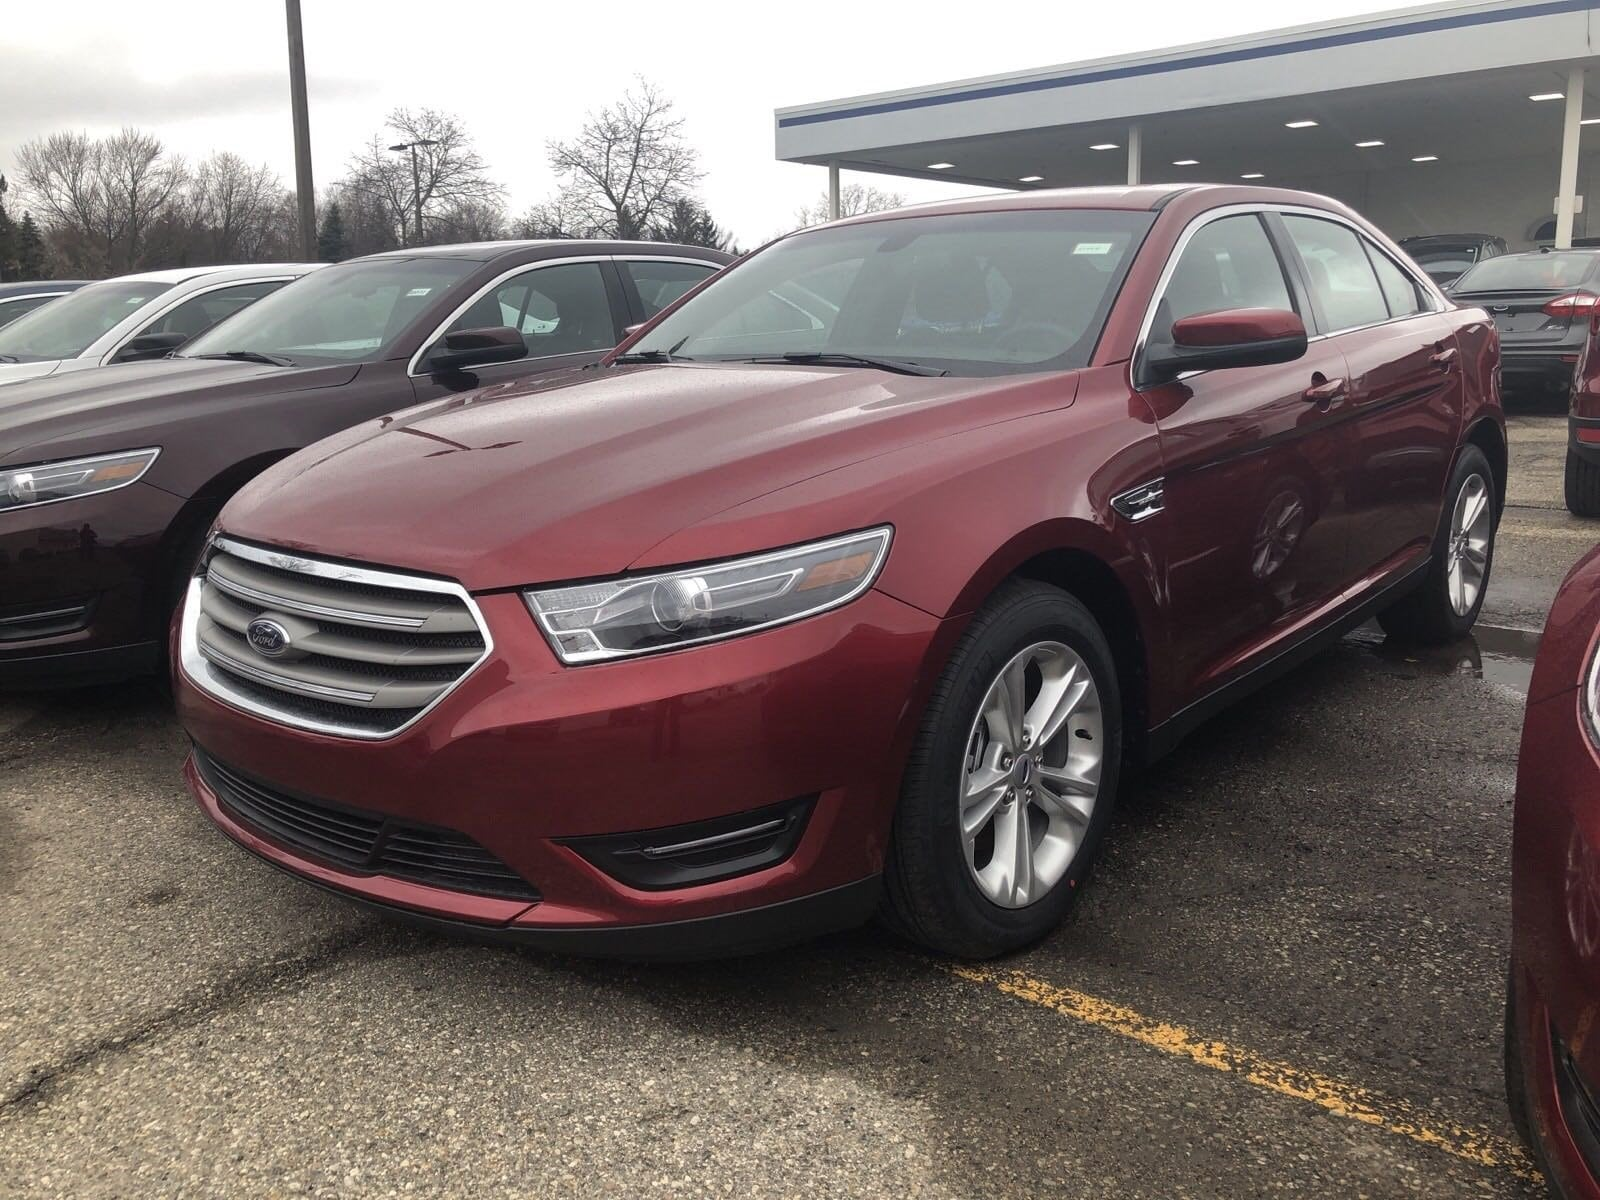 New 2019 Ford Taurus For Sale at Huntington Ford   VIN: 1FAHP2H81KG110527